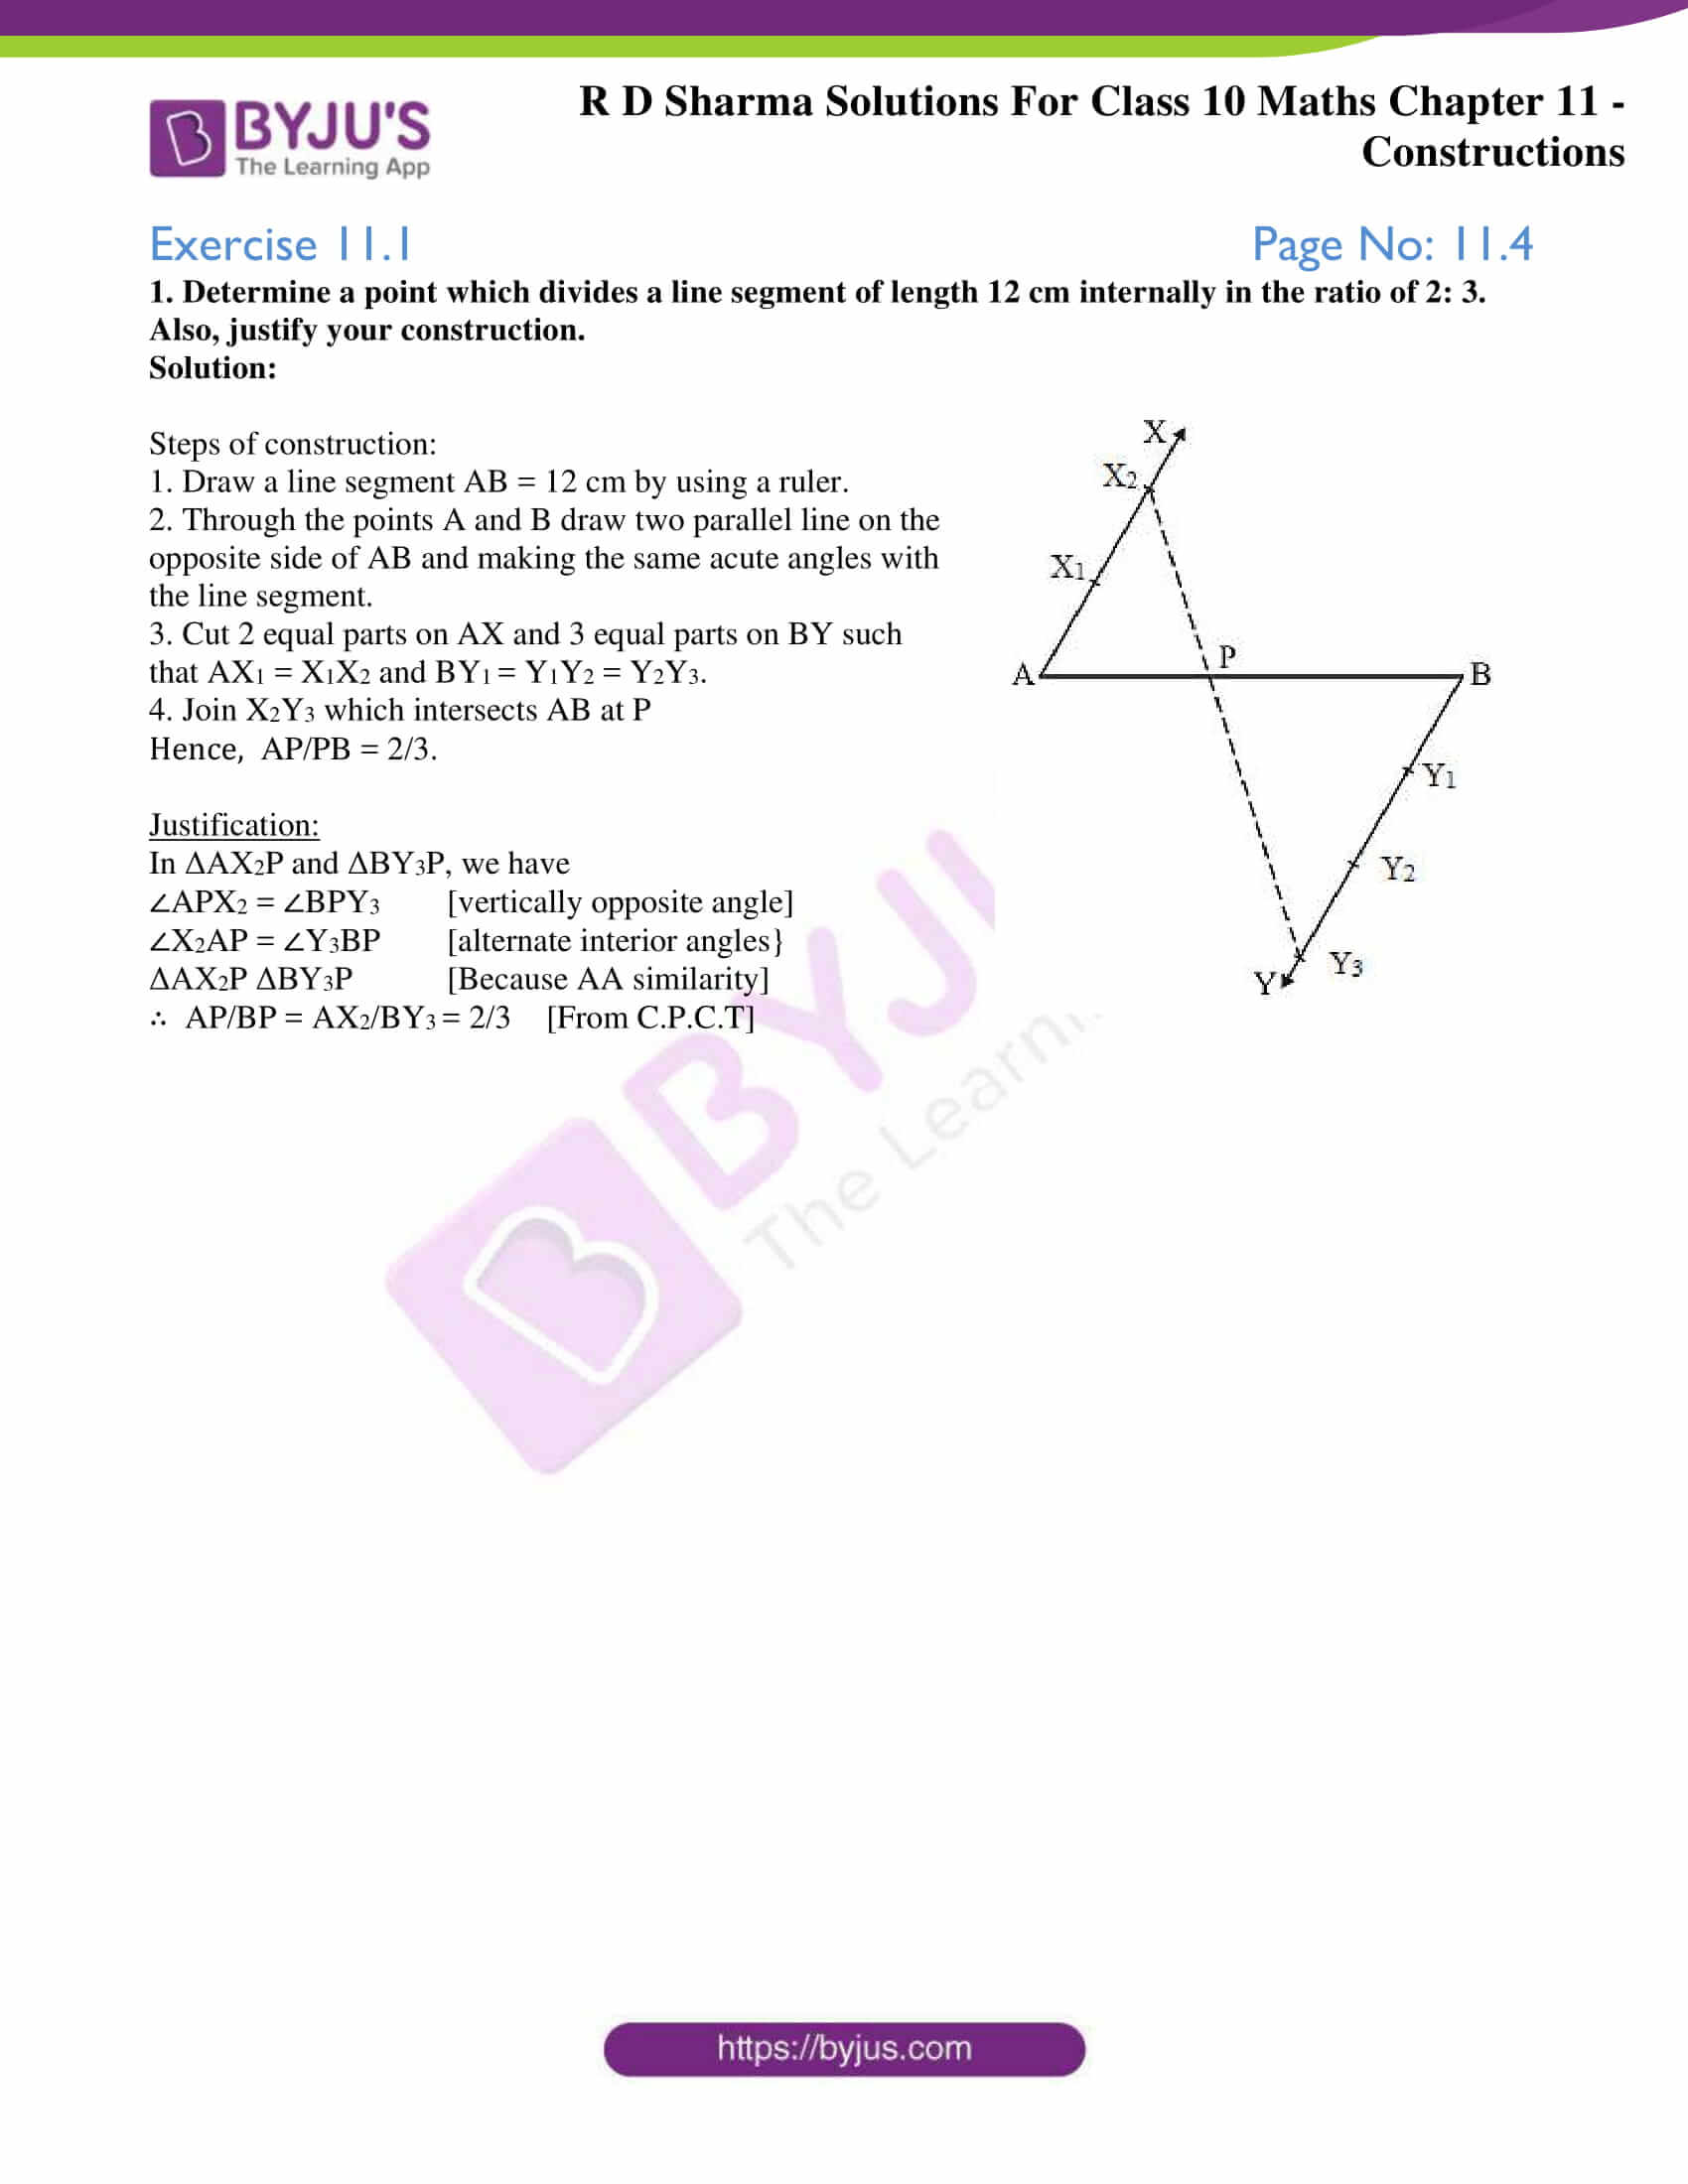 rd sharma solutions for class 10 chapter 11 ex 1